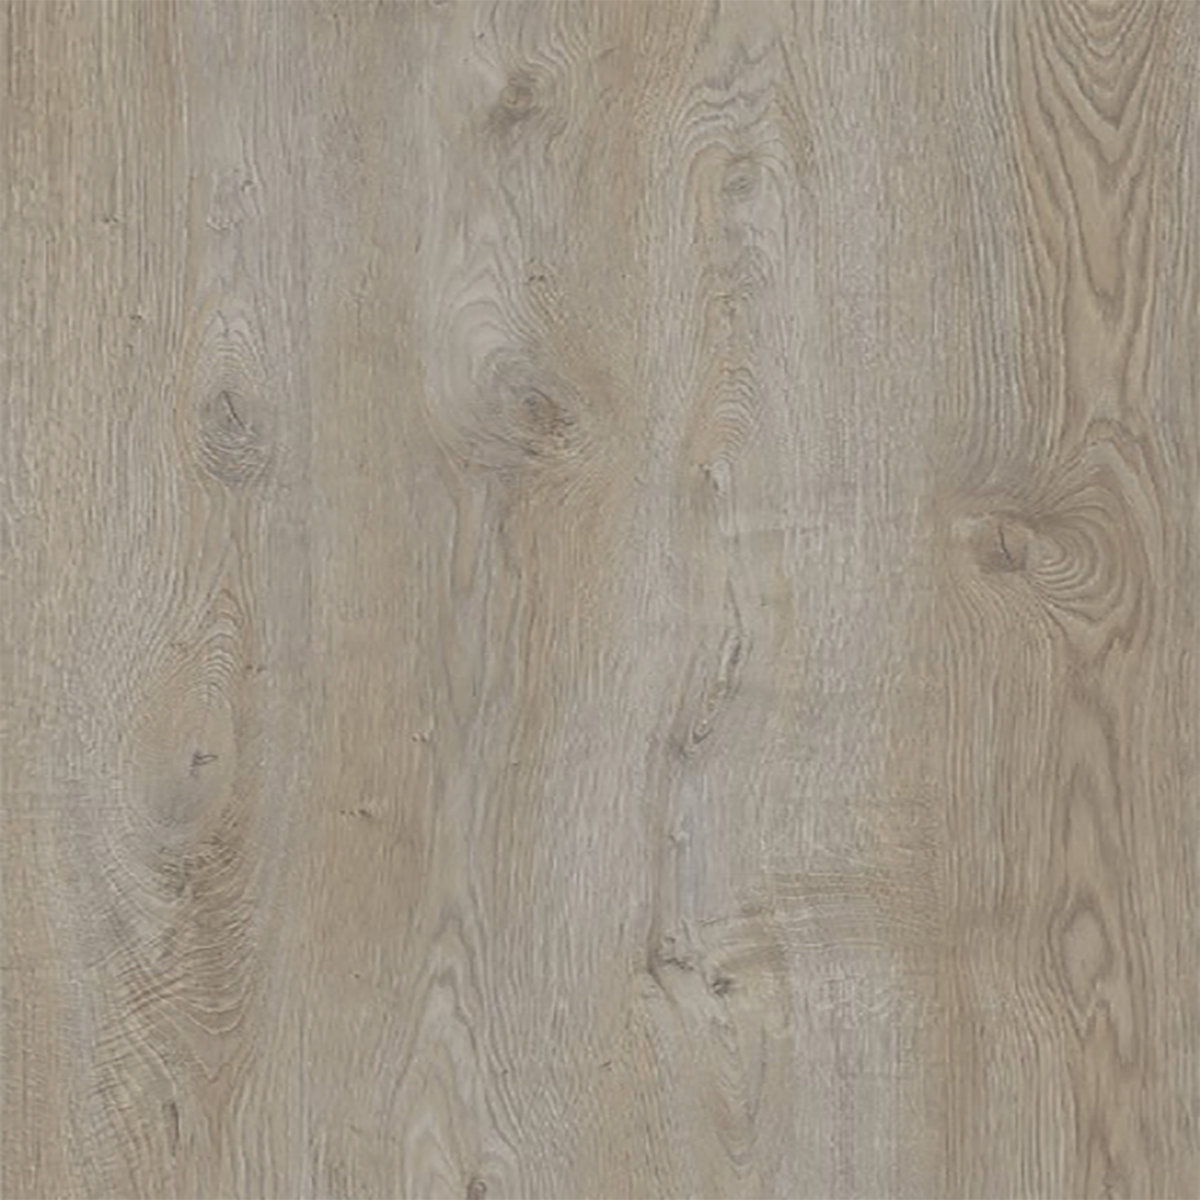 8062 Natural Birch Dream Living 12.3mm Random Collection Laminate Flooring Image